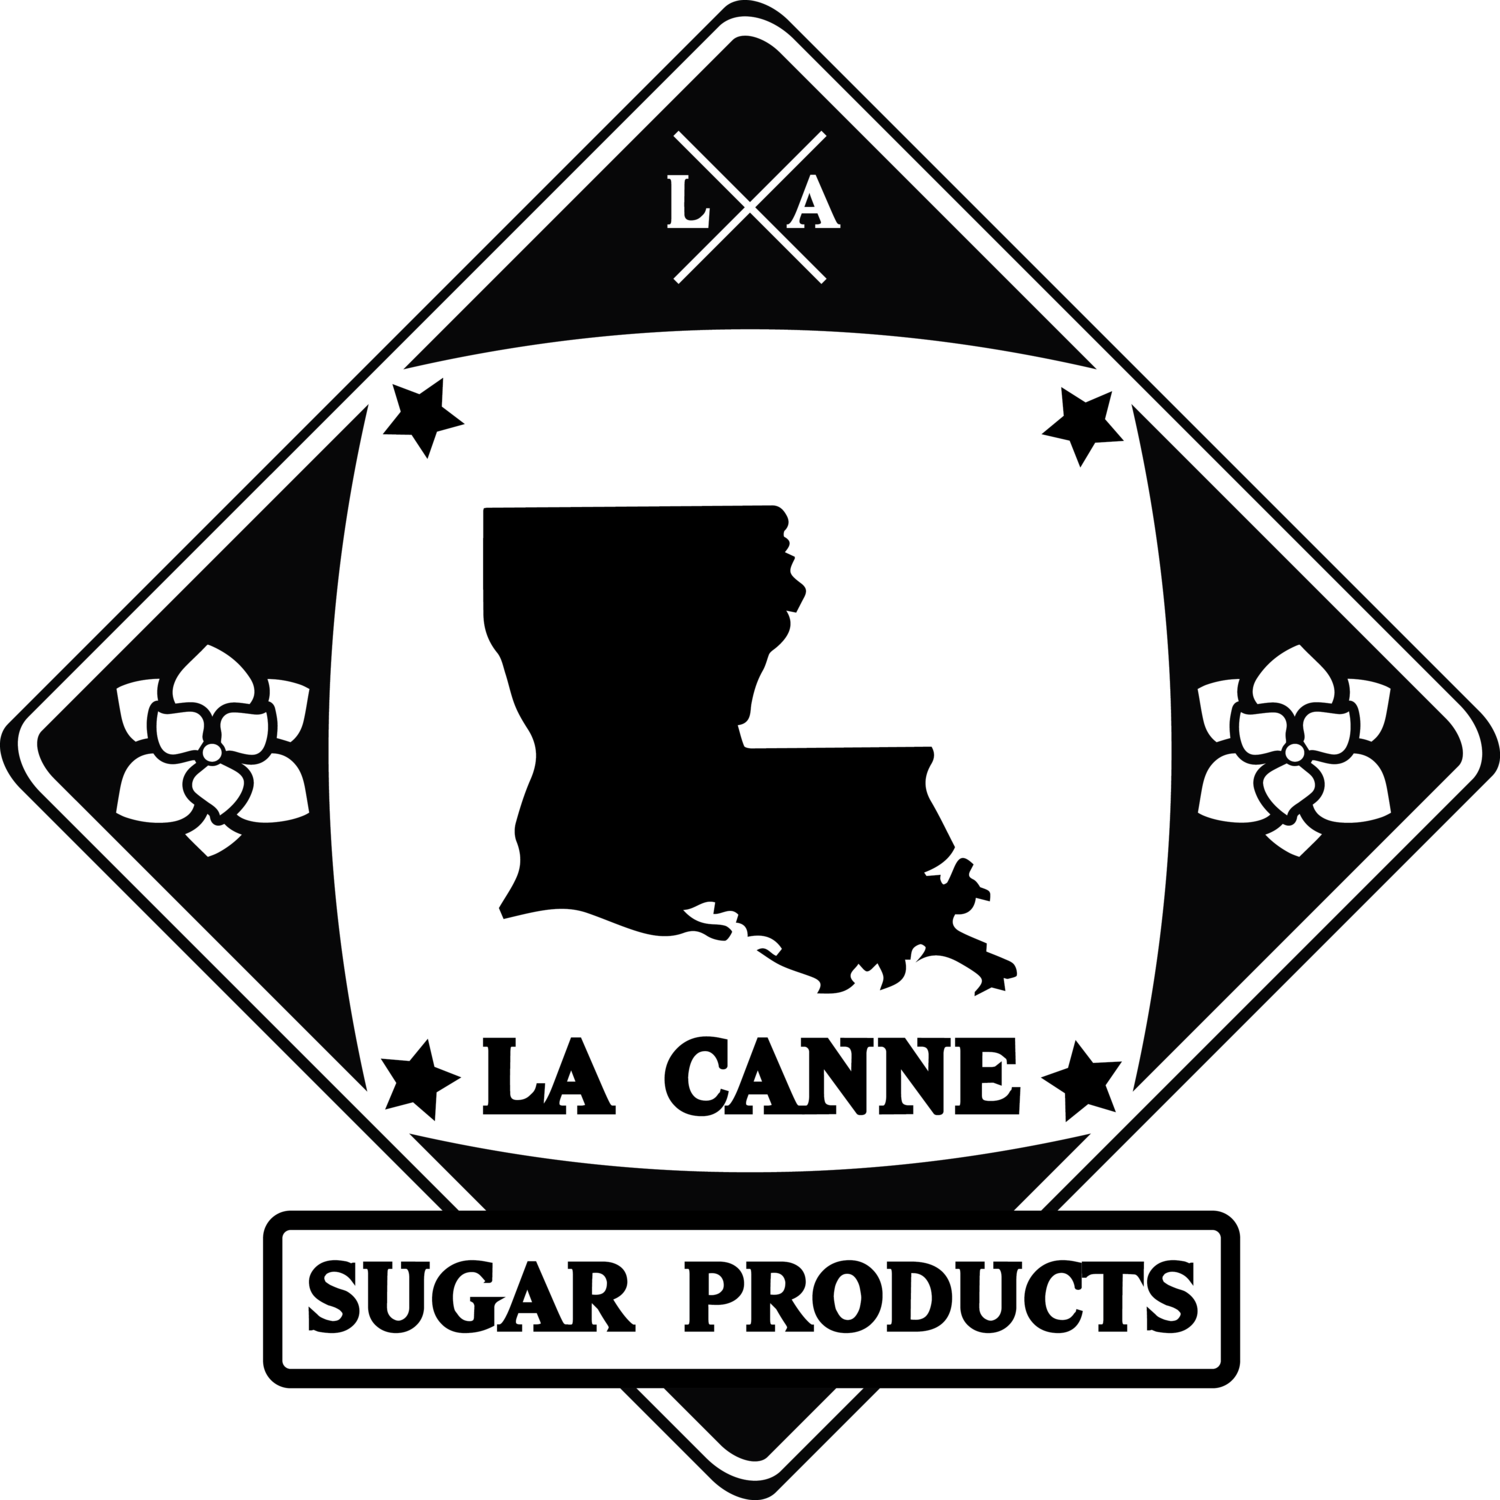 La Canne Sugar Products